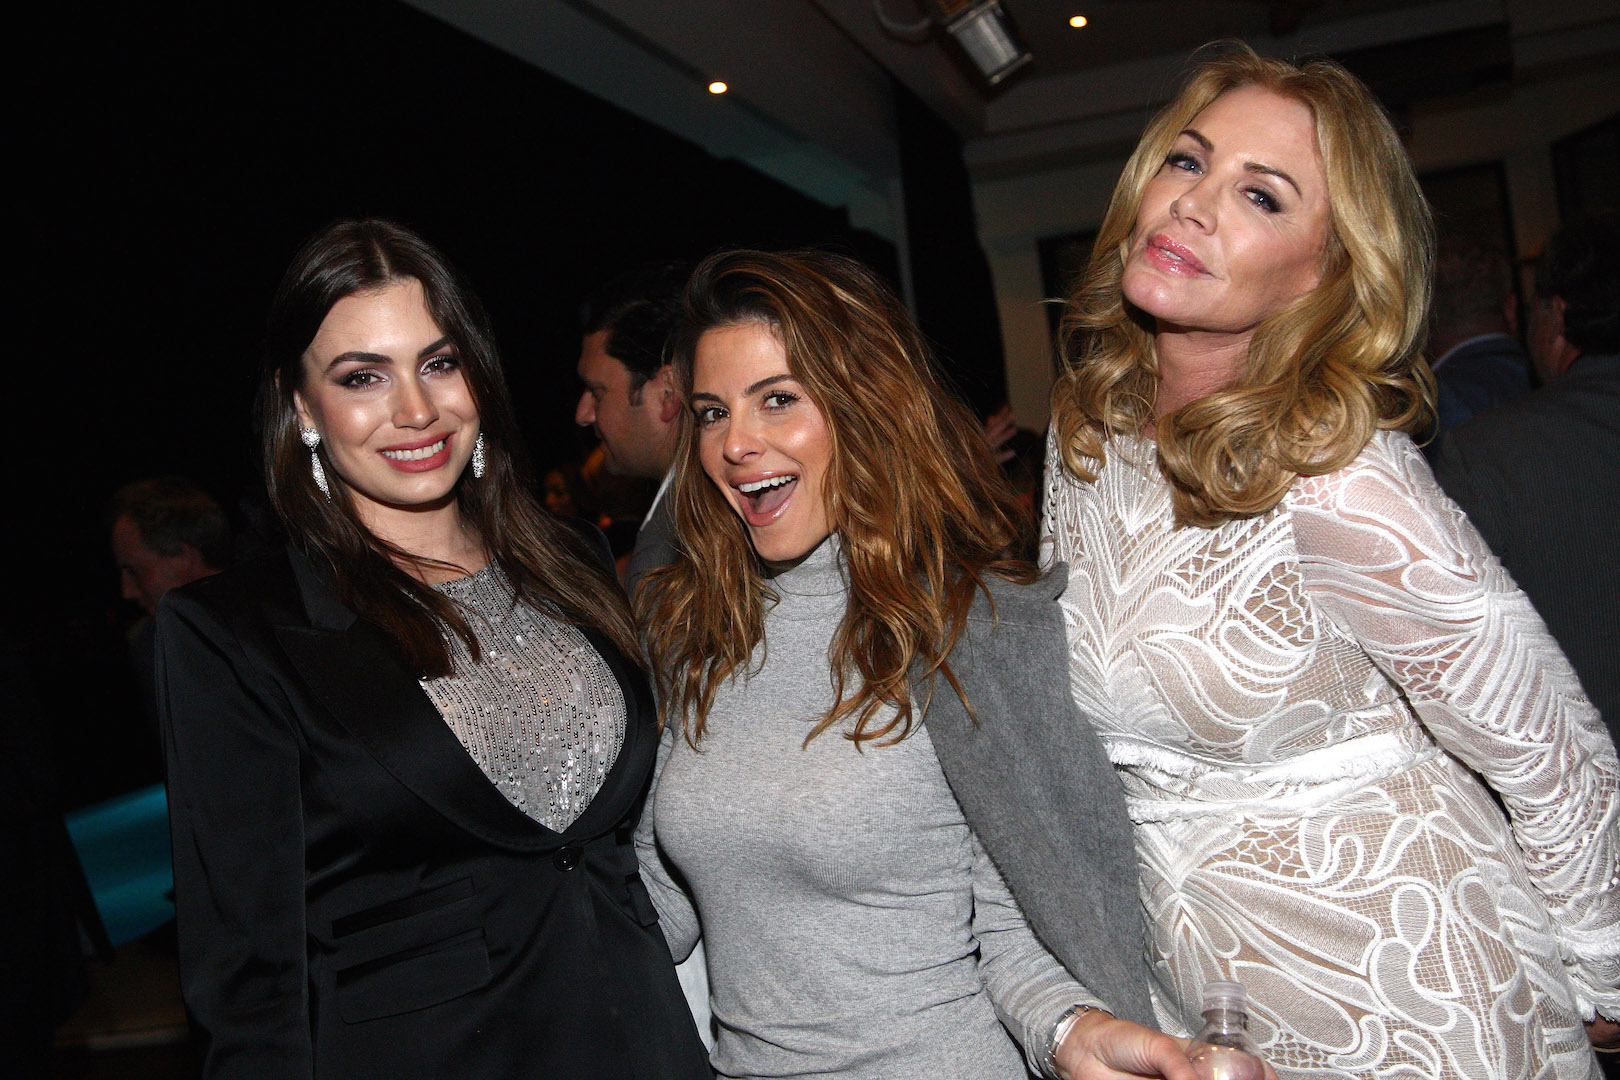 BEVERLY HILLS, CA - NOVEMBER 07:  TV personalities Sophie Simmons, Maria Menounos and Shannon Tweed attend the Children Matter.NGO first annual gala on November 7, 2015 in Beverly Hills, California.  (Photo by Tommaso Boddi/Getty Images for The Children Matter.NGO)